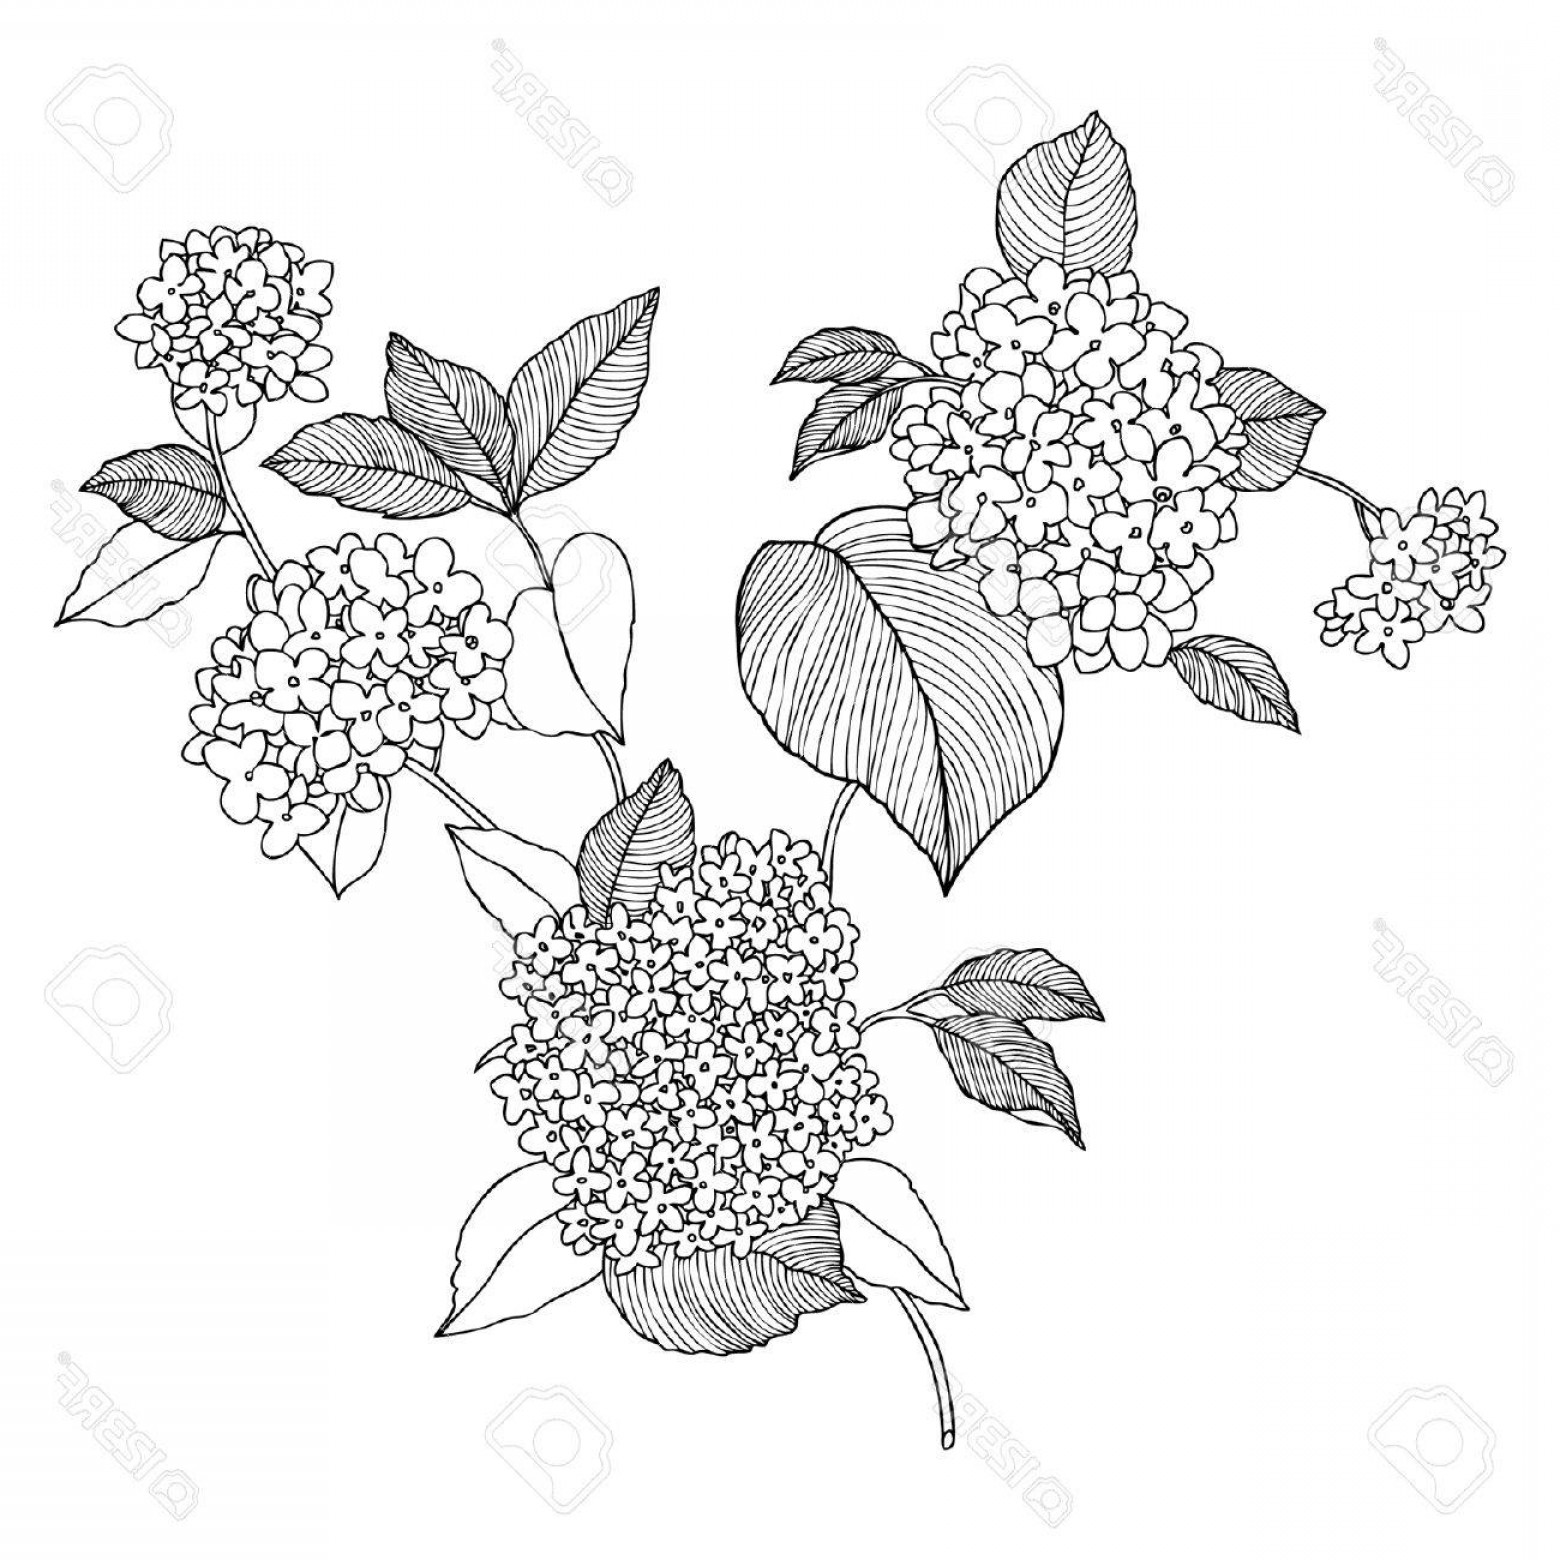 Lilac Vector Drawing: Photostock Vector Elegance Seamless Pattern With Flowers Of Lilac Vector Floral Illustration In Vintage Style